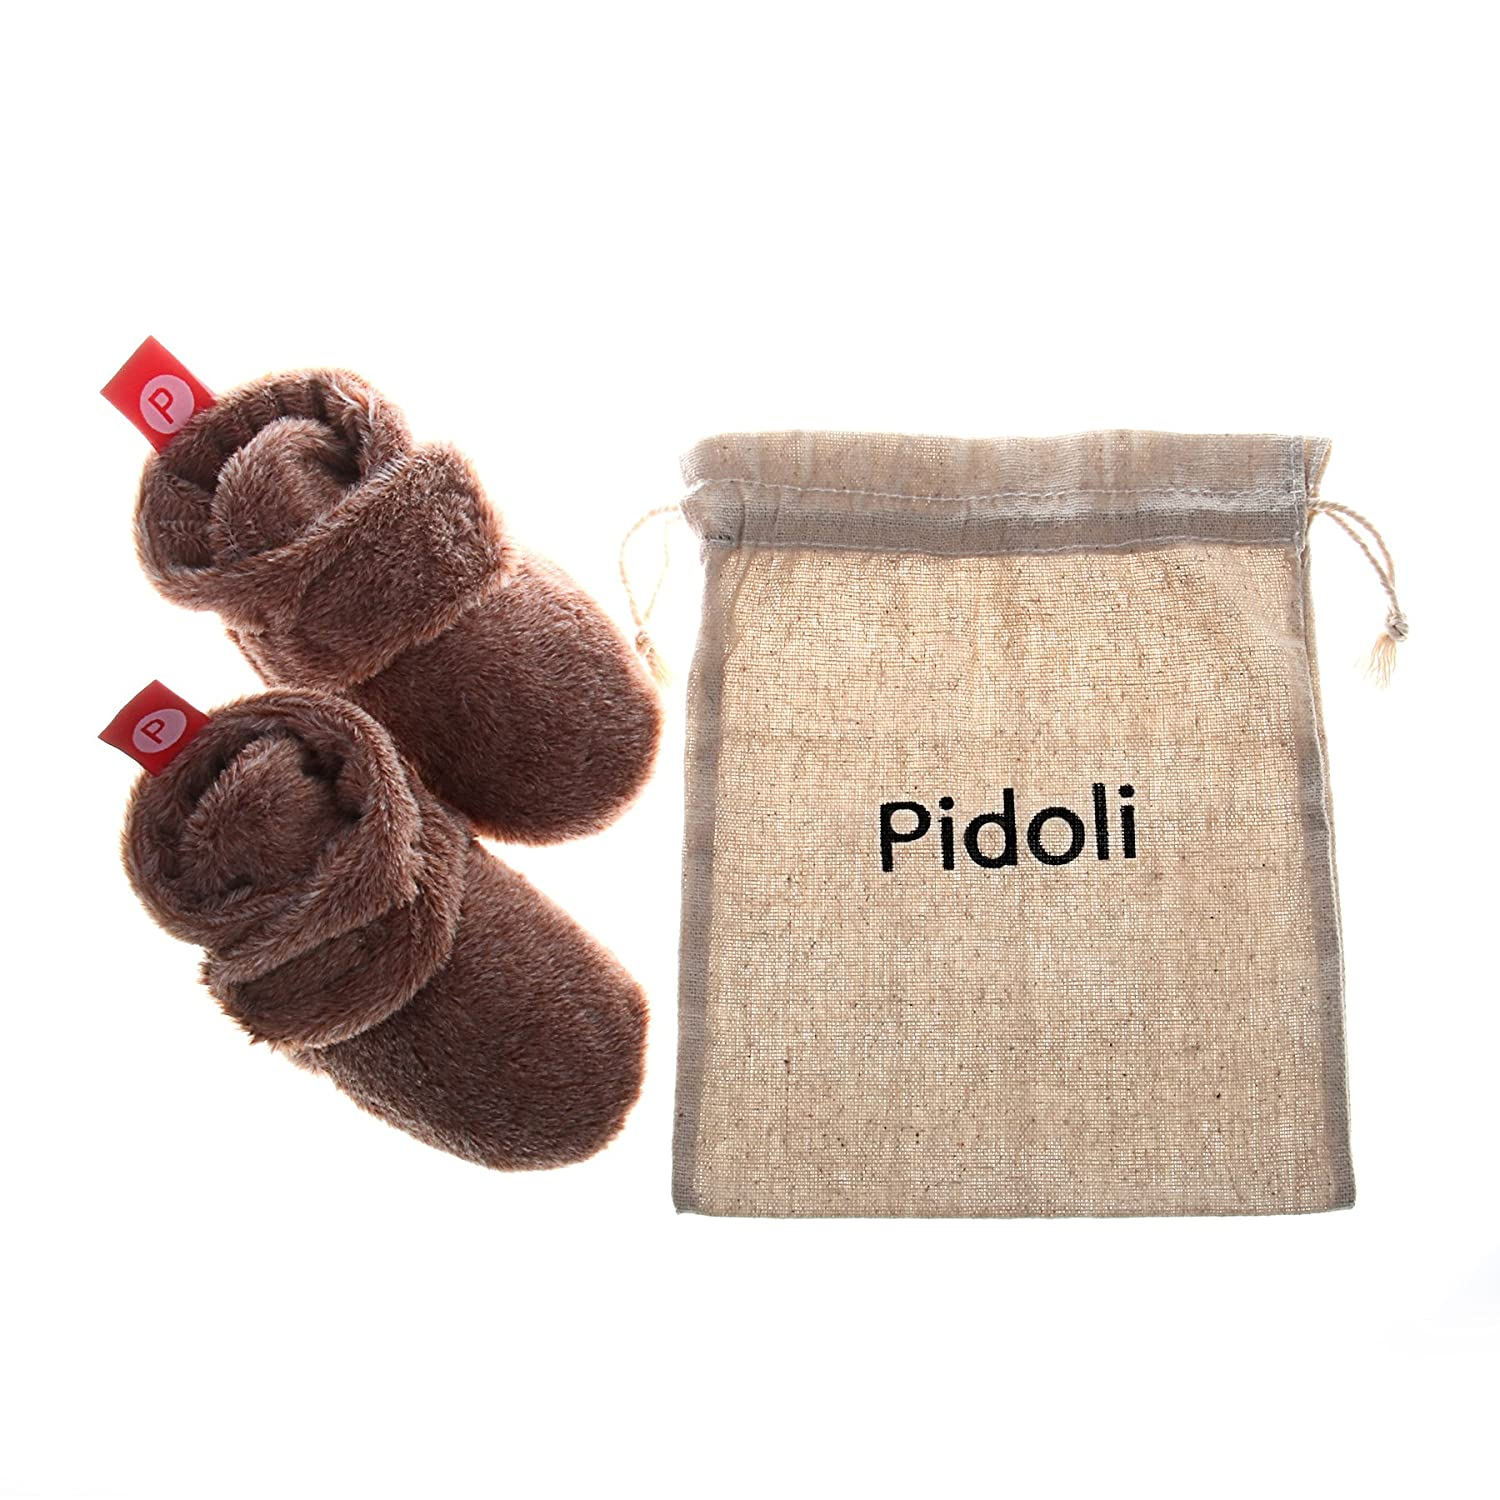 Pidoli Unisex-Baby Newborn Soft Fleece Bootie Infant//toddler